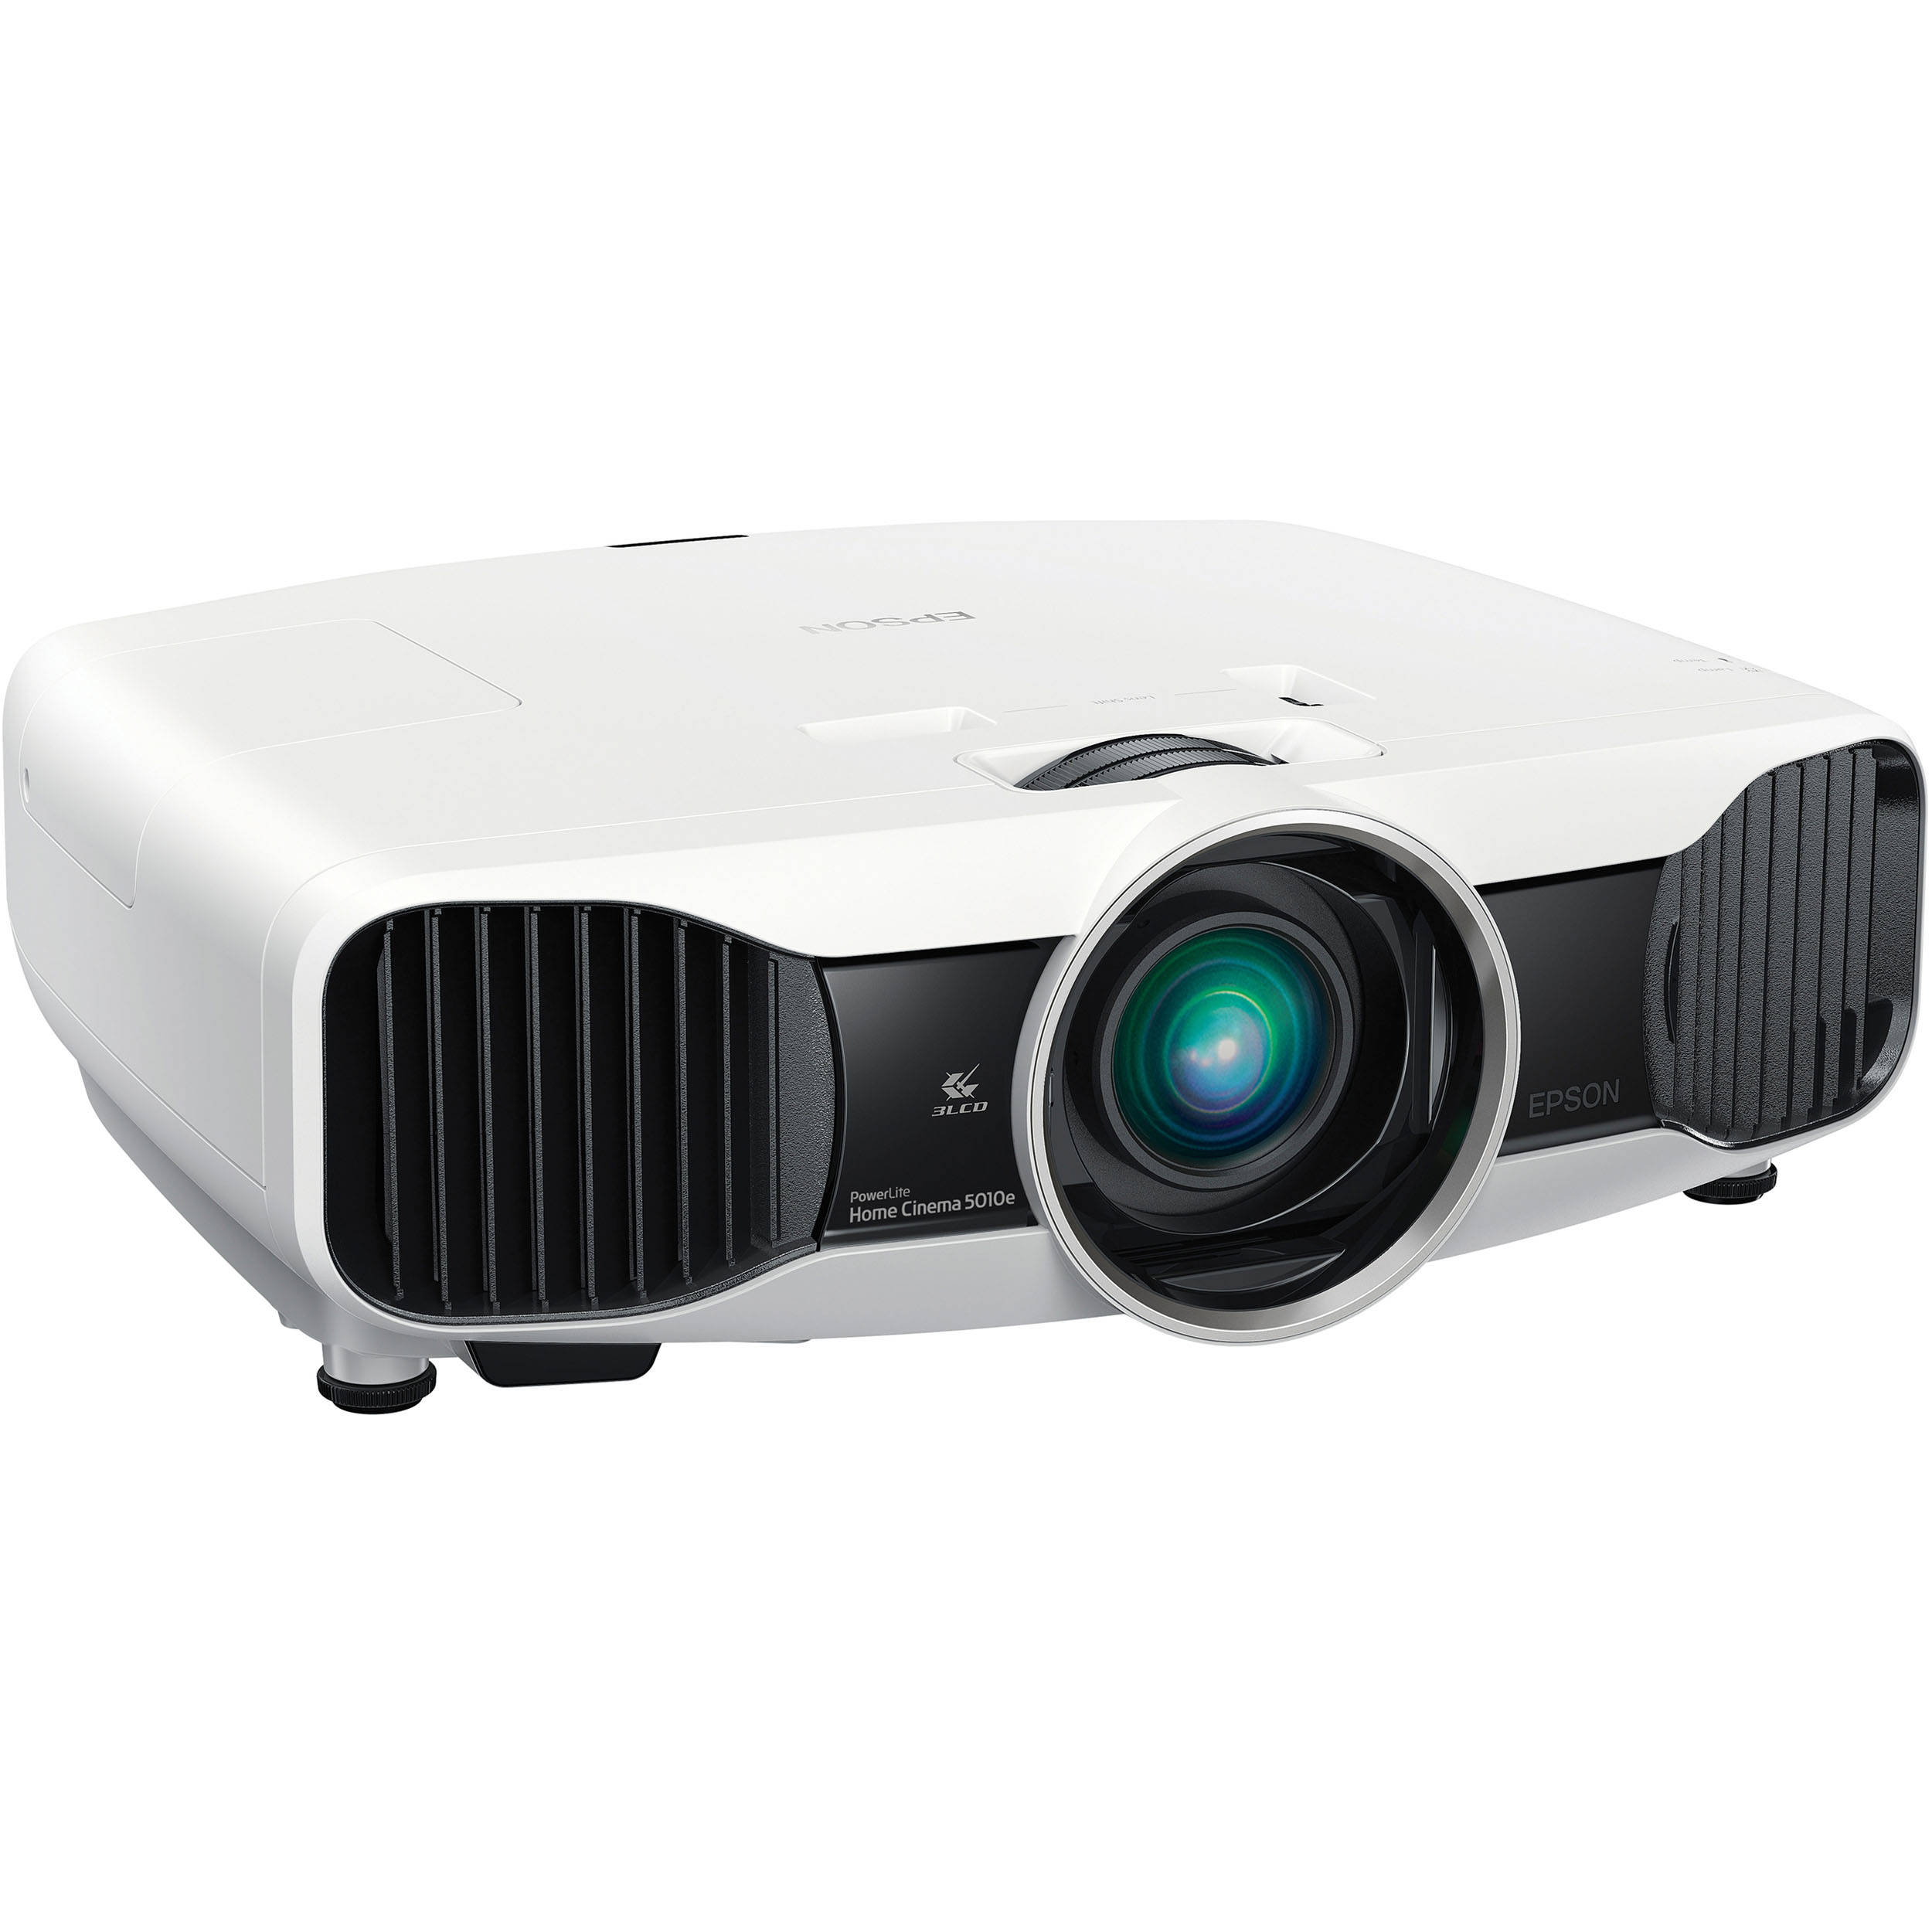 Hd Projector Full Color 720p 2400 Lumens Digital Tv Single: Epson PowerLite Home Cinema 5010e Projector W/ V11H426020 B&H